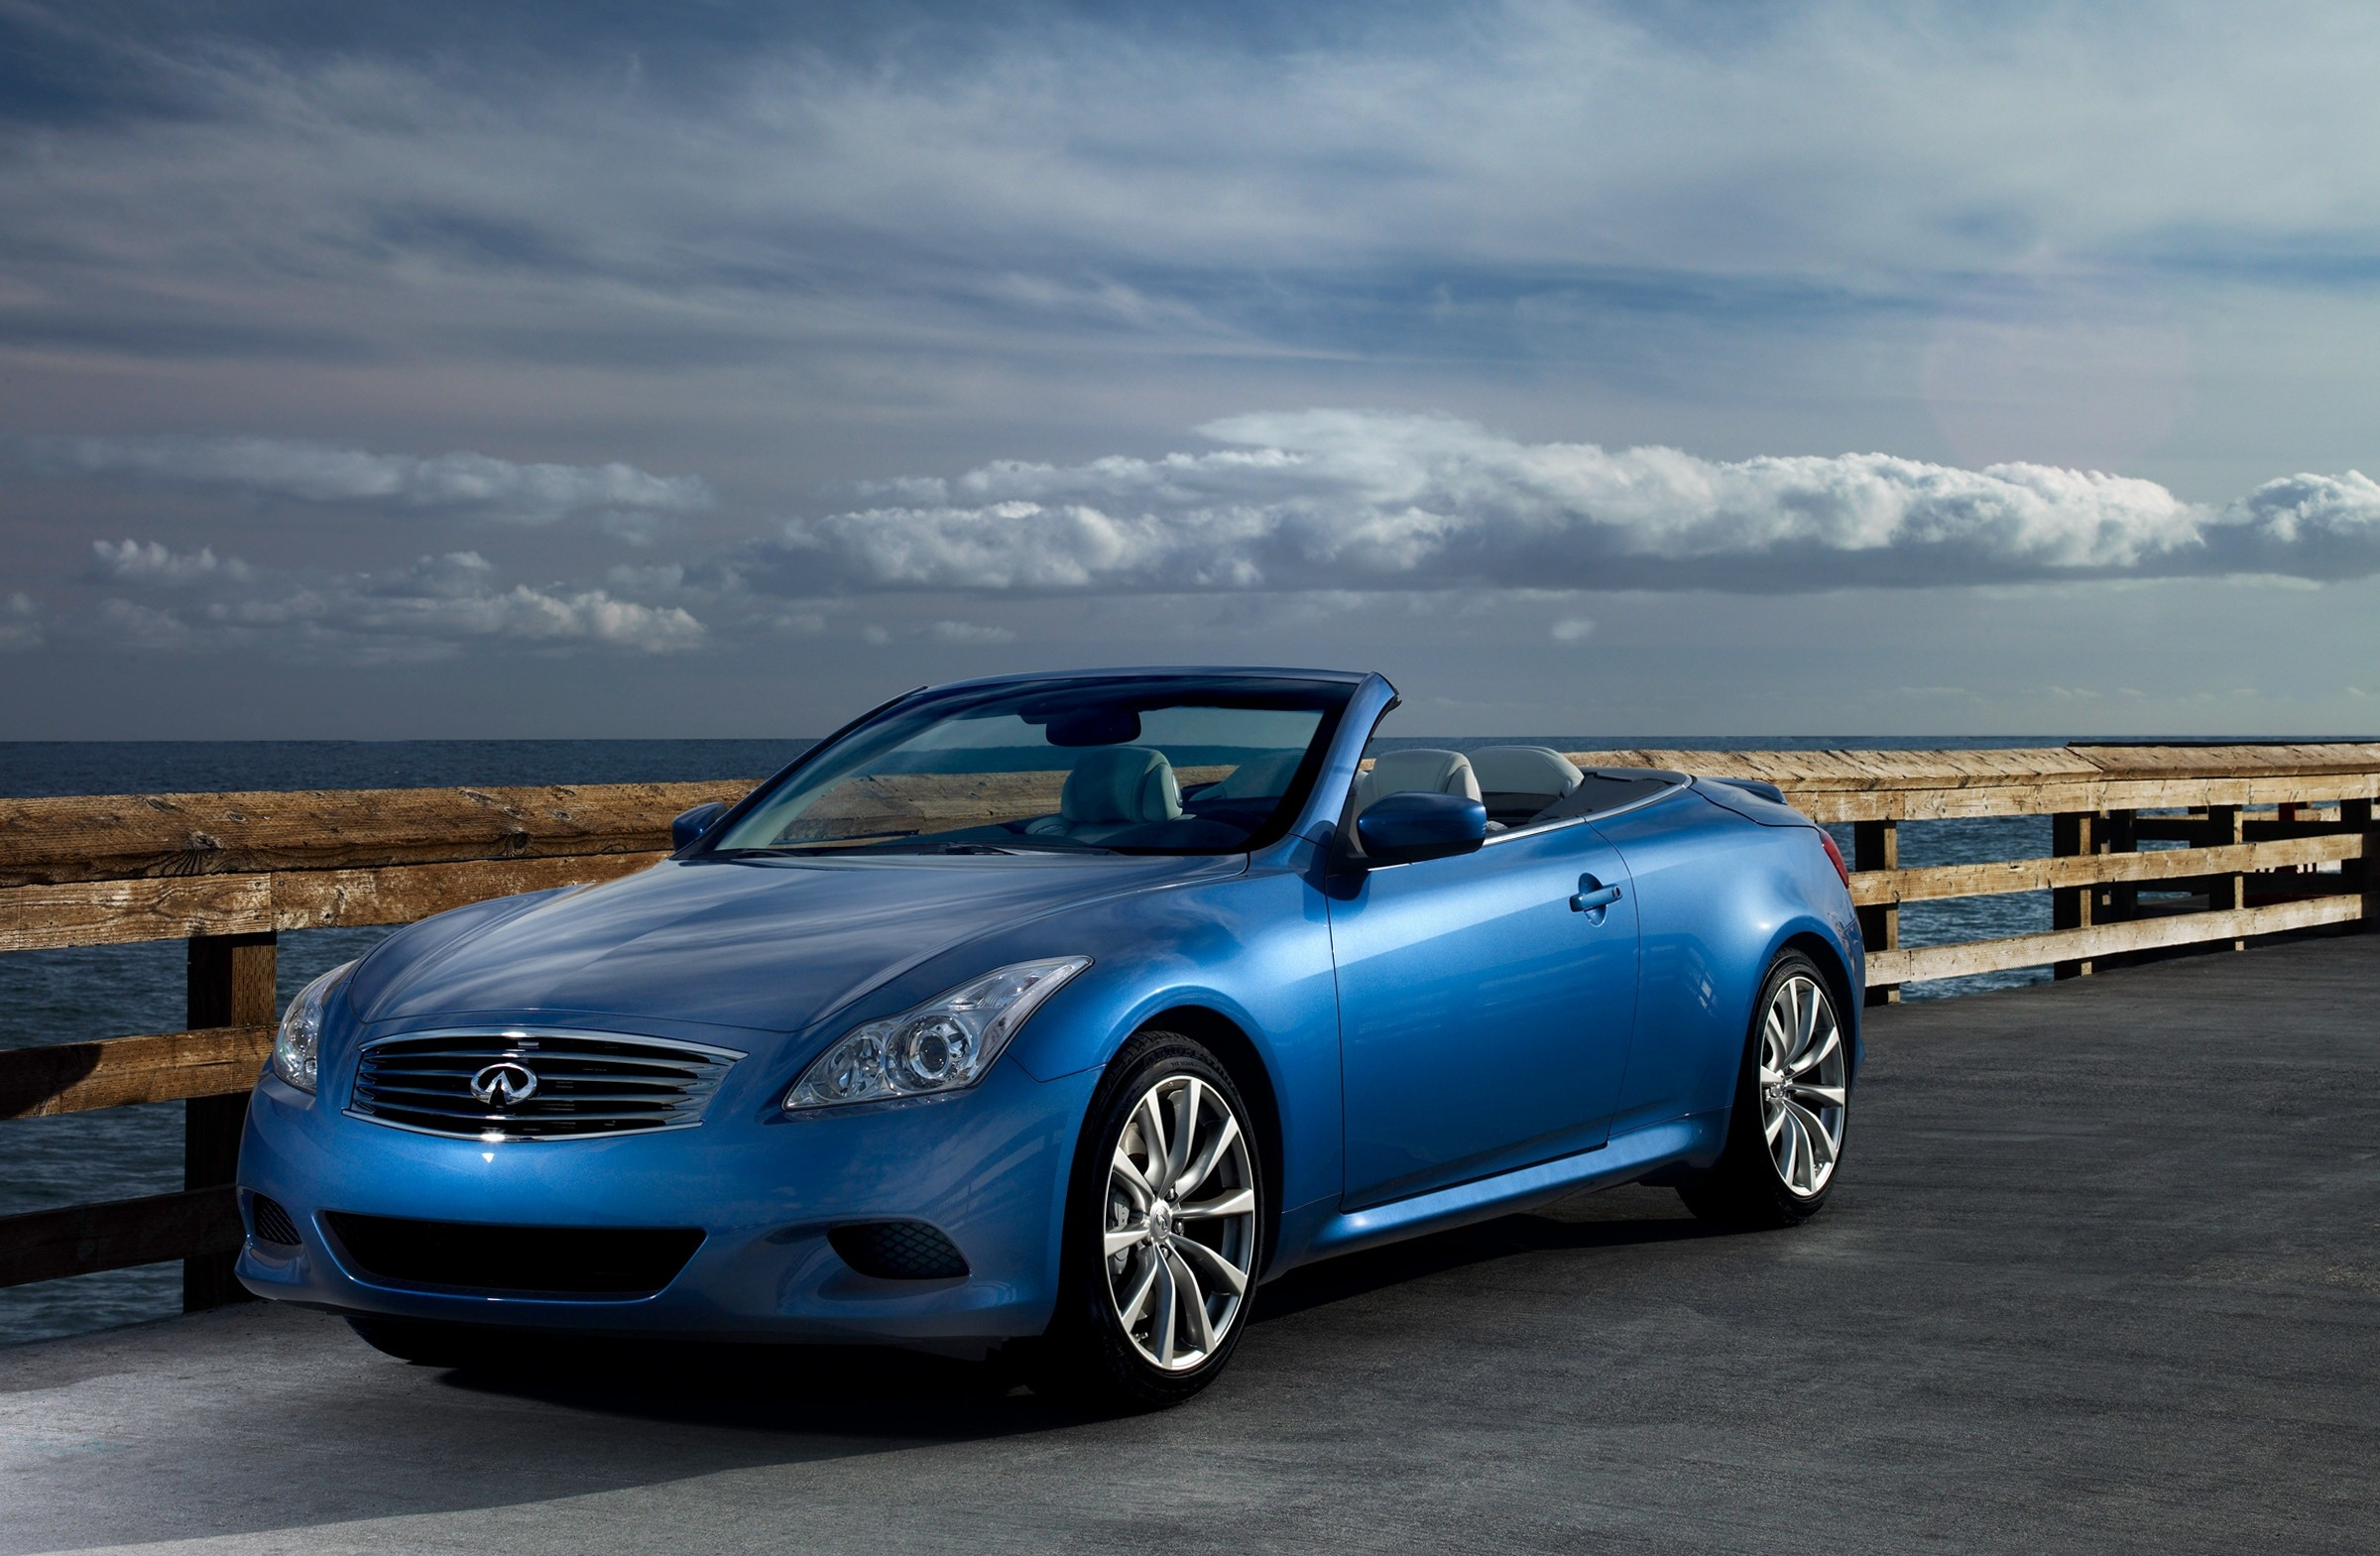 wallpaper size gallery convertible picture wallpapers photo infinity infiniti best view index full